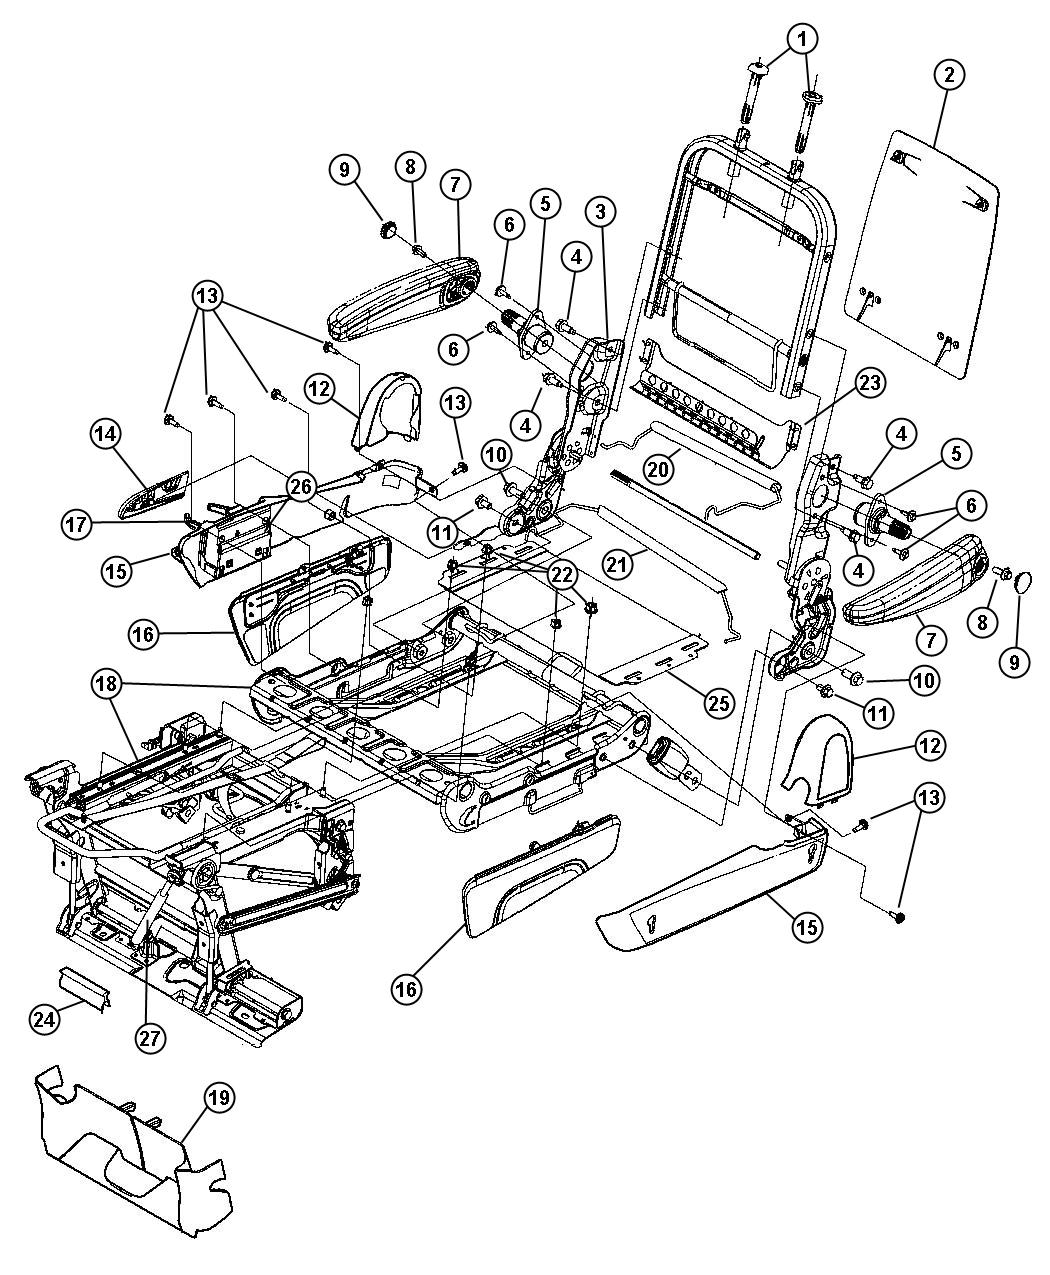 2005 Chrysler Town And Country Parts Diagram Seat